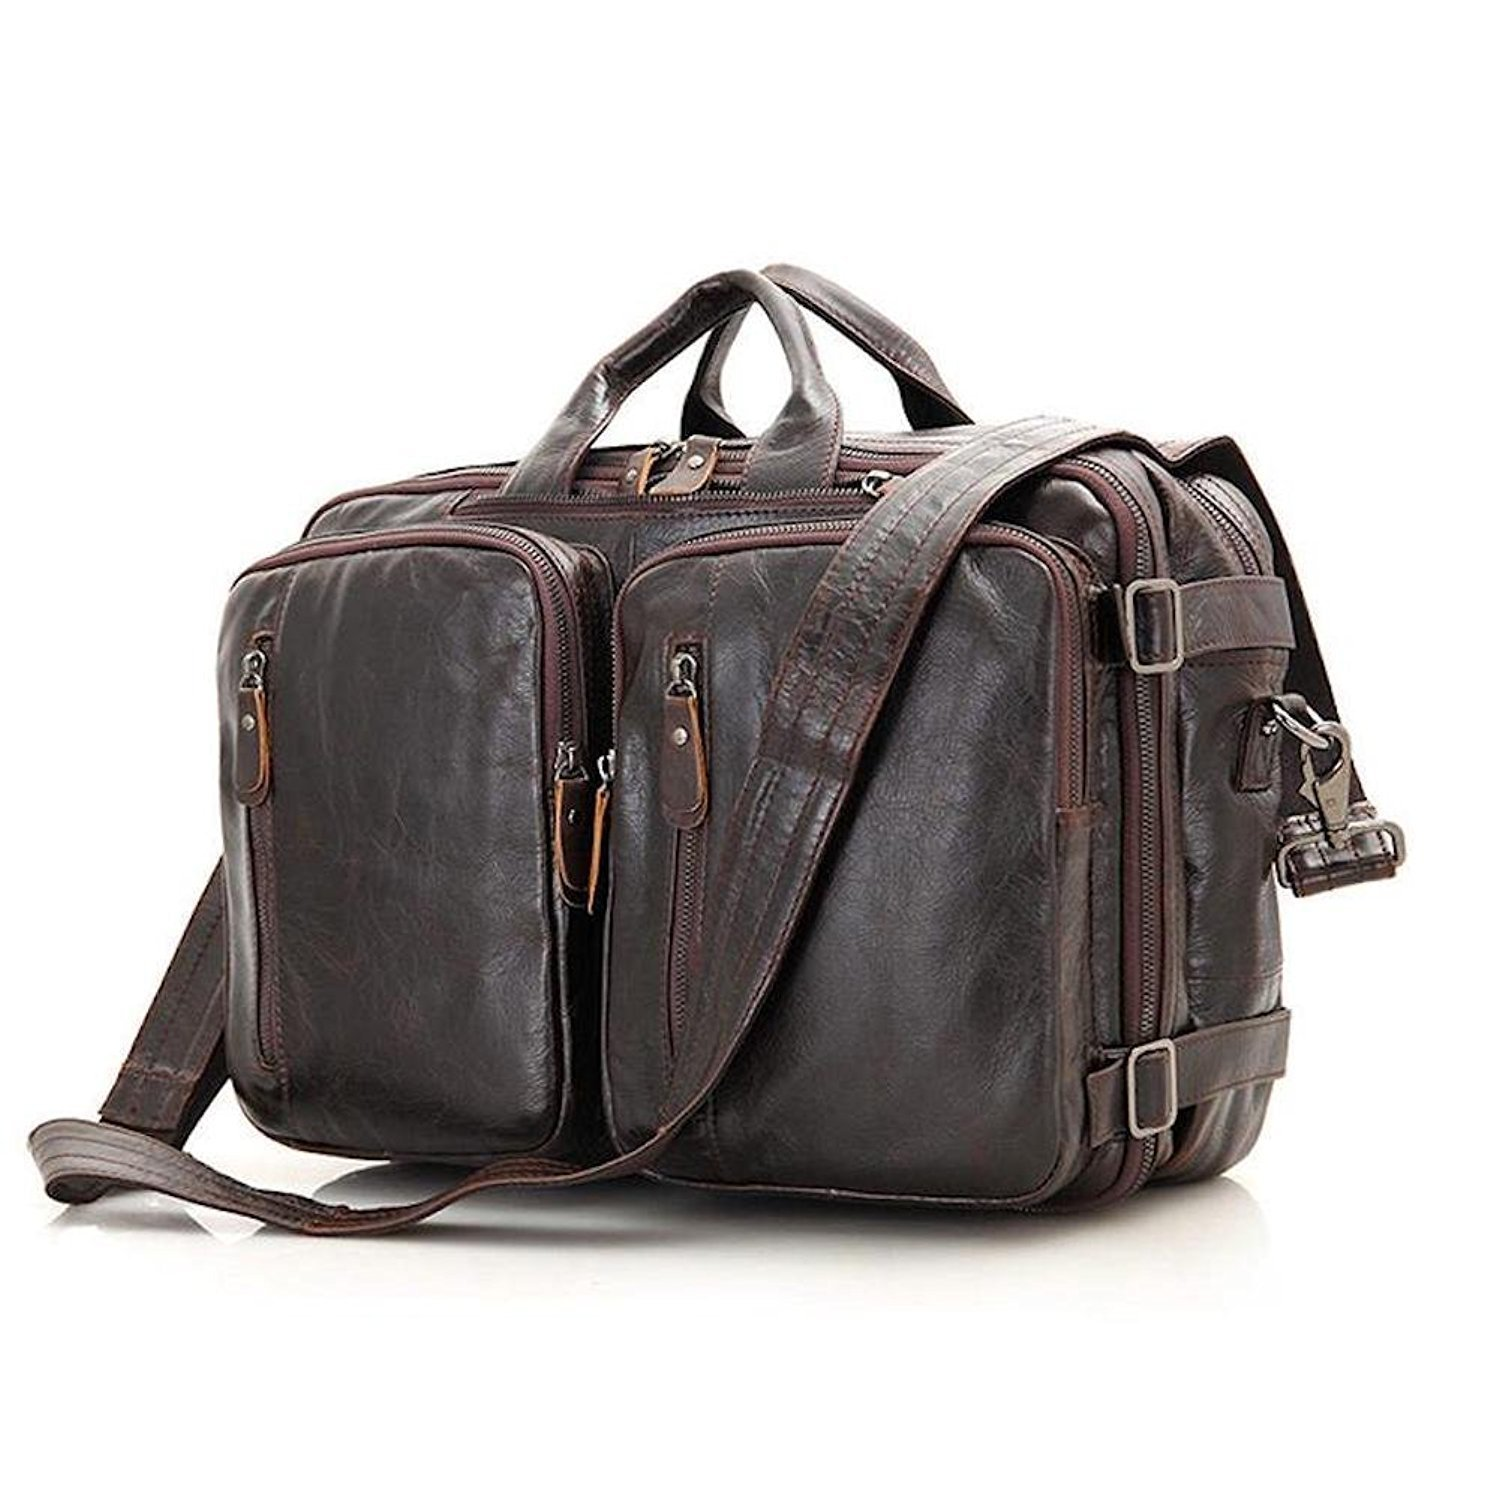 Clean Vintage Hybrid Backpack Messenger Bag / Convertible Briefcase Backpack BookBag Daypack-Tanned Leather, Brown